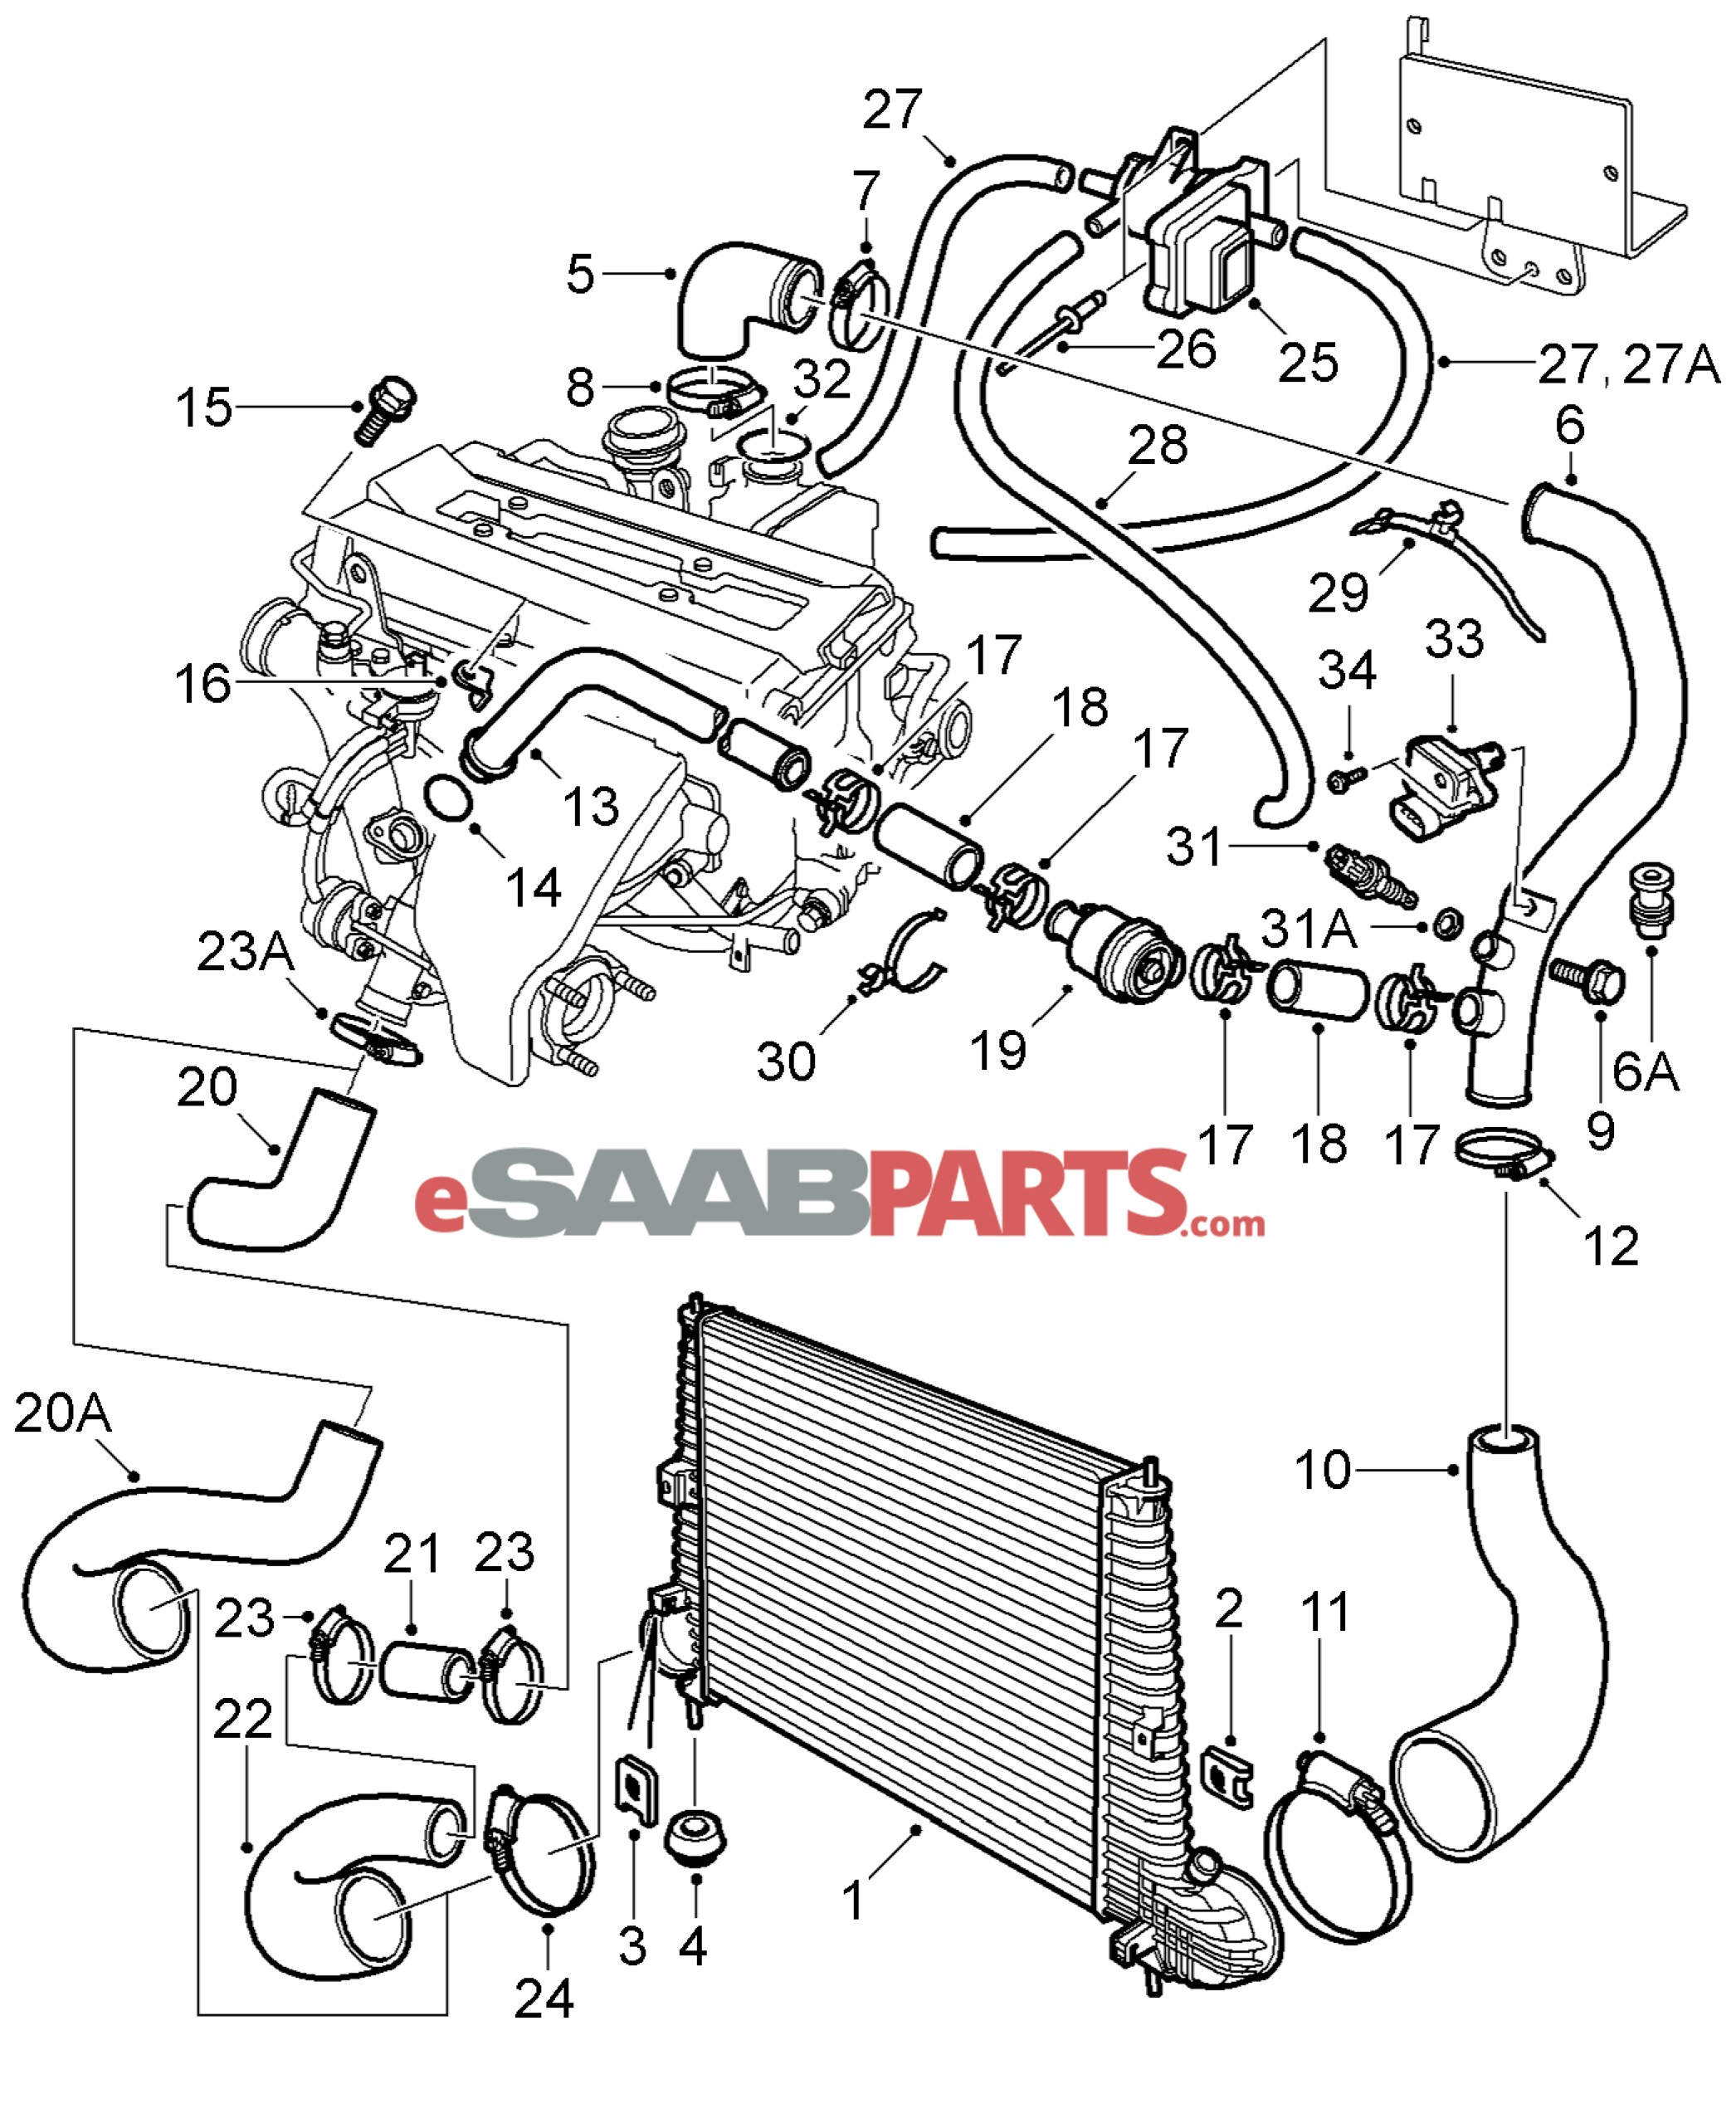 2 8 V6 Engine Diagram Opinions About Wiring Library 2000 Ford Saab Trusted Diagrams U2022 Rh Inspiralni Co 28